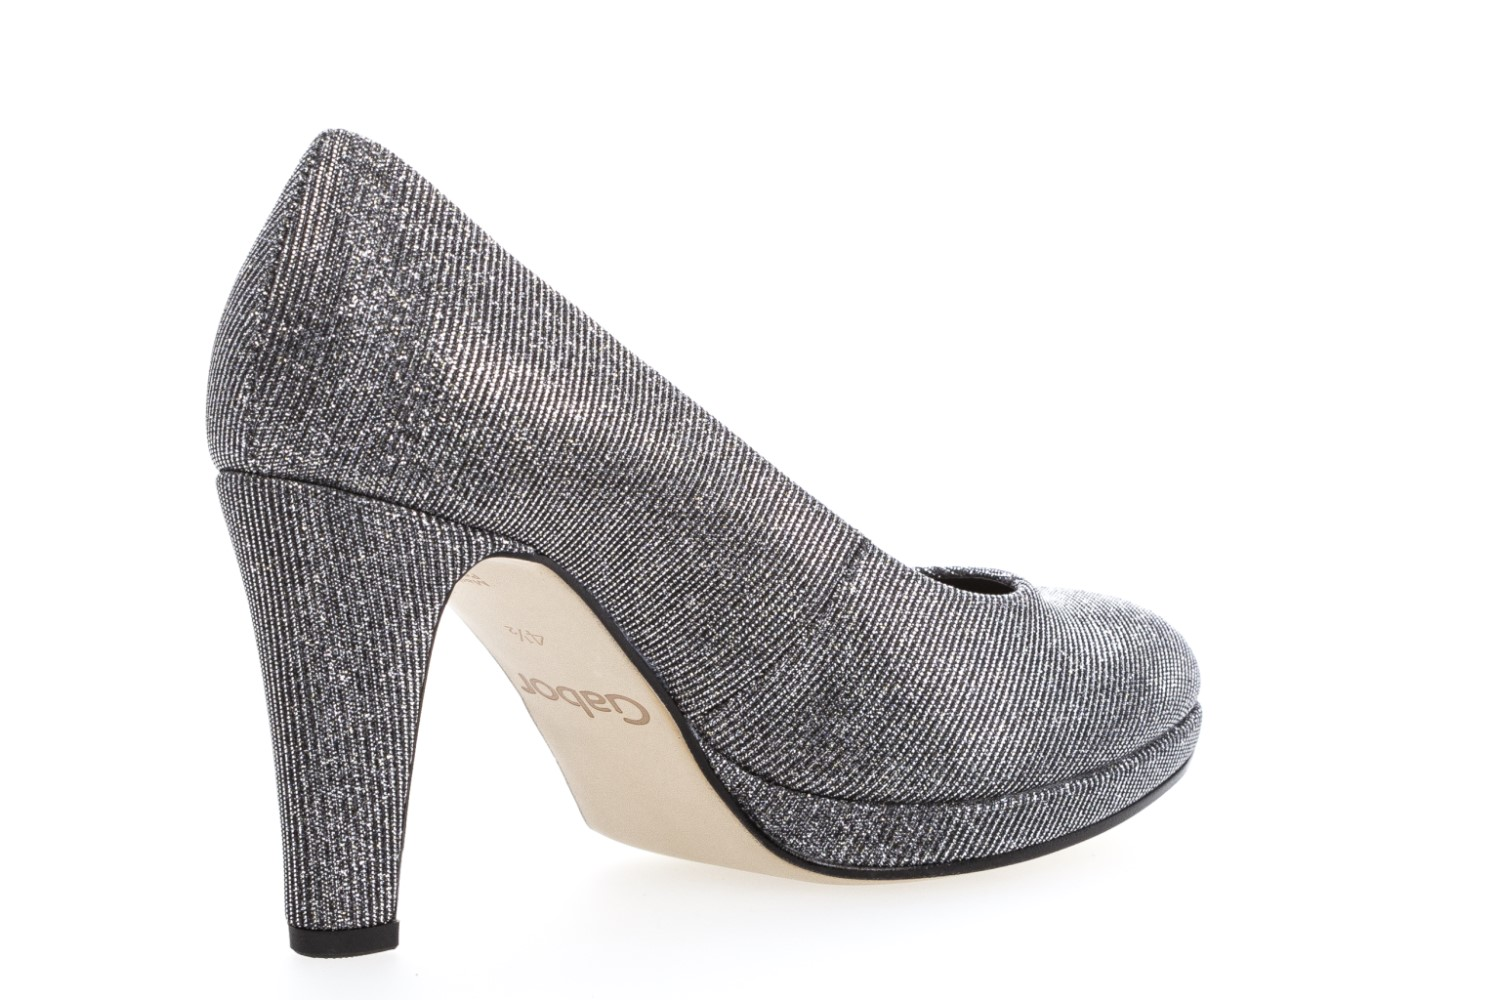 Find gorgeous Silver Pumps, High-Heel Silver Pumps, Low-Heel Silver Pumps, Slingback Silver Pumps and more at Macy's.